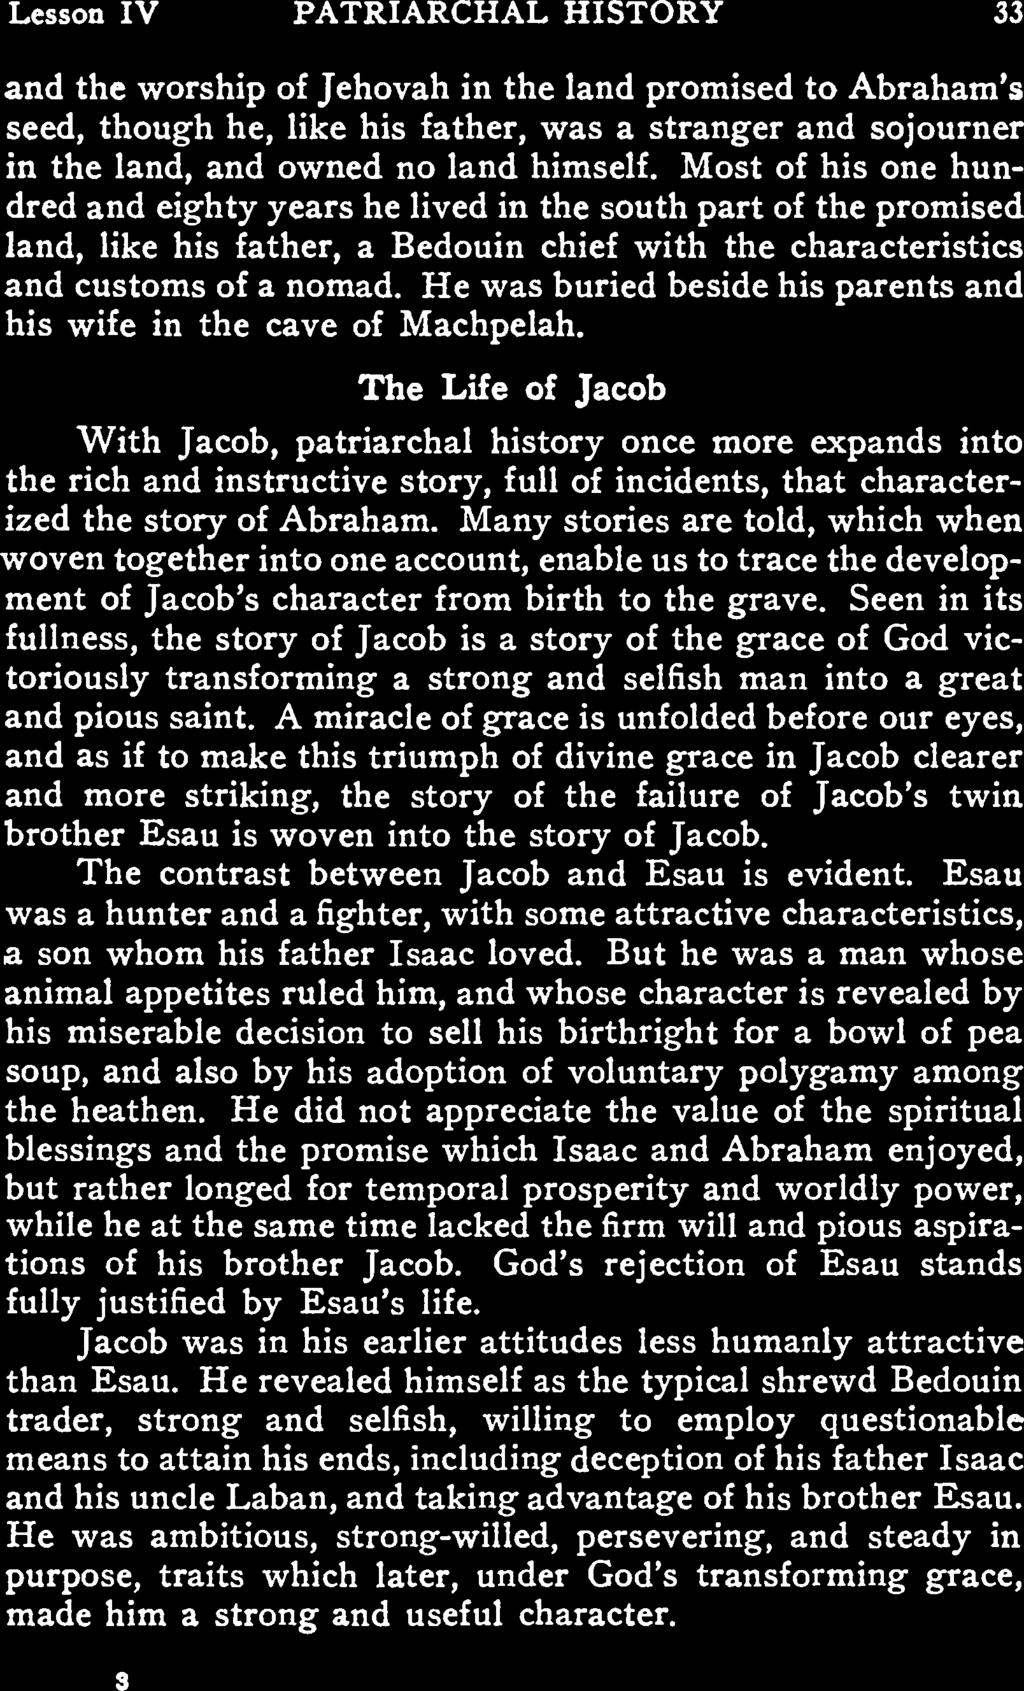 Lesson IV PATRIARCHAL HISTORY 33 nd the worship of Jehovh in the lnd promised to Abrhm s seed, though he, like his fther, ws strnger nd sojourner in the lnd, nd owned no lnd himself.